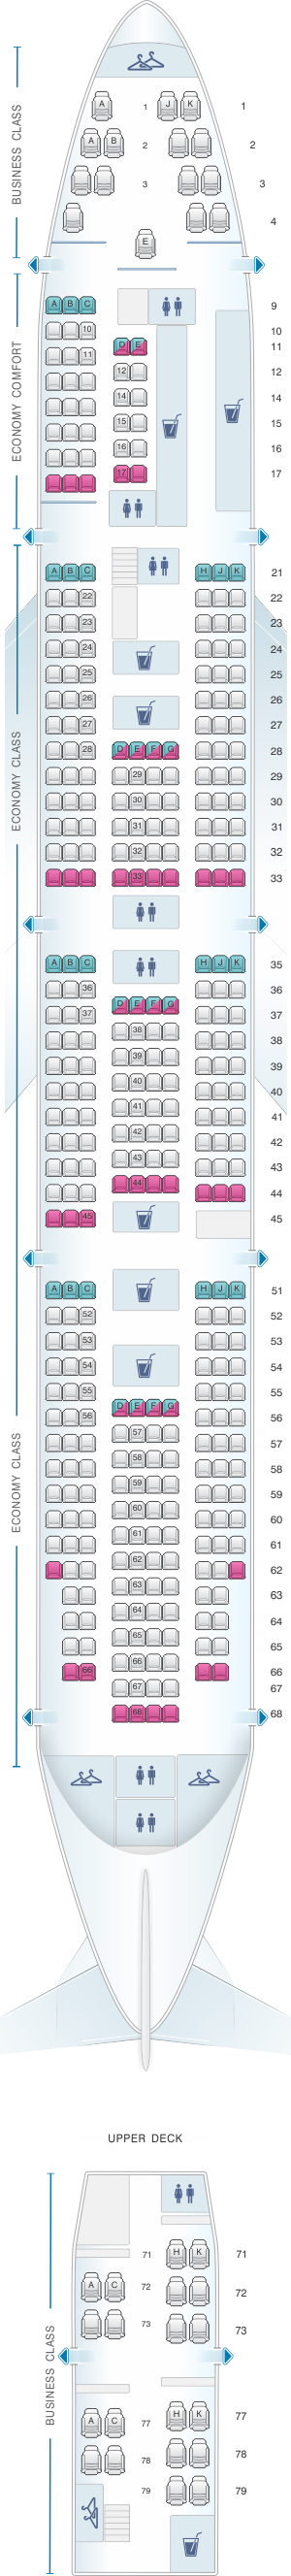 Seat Map Klm Boeing B747 400 New World Business Class